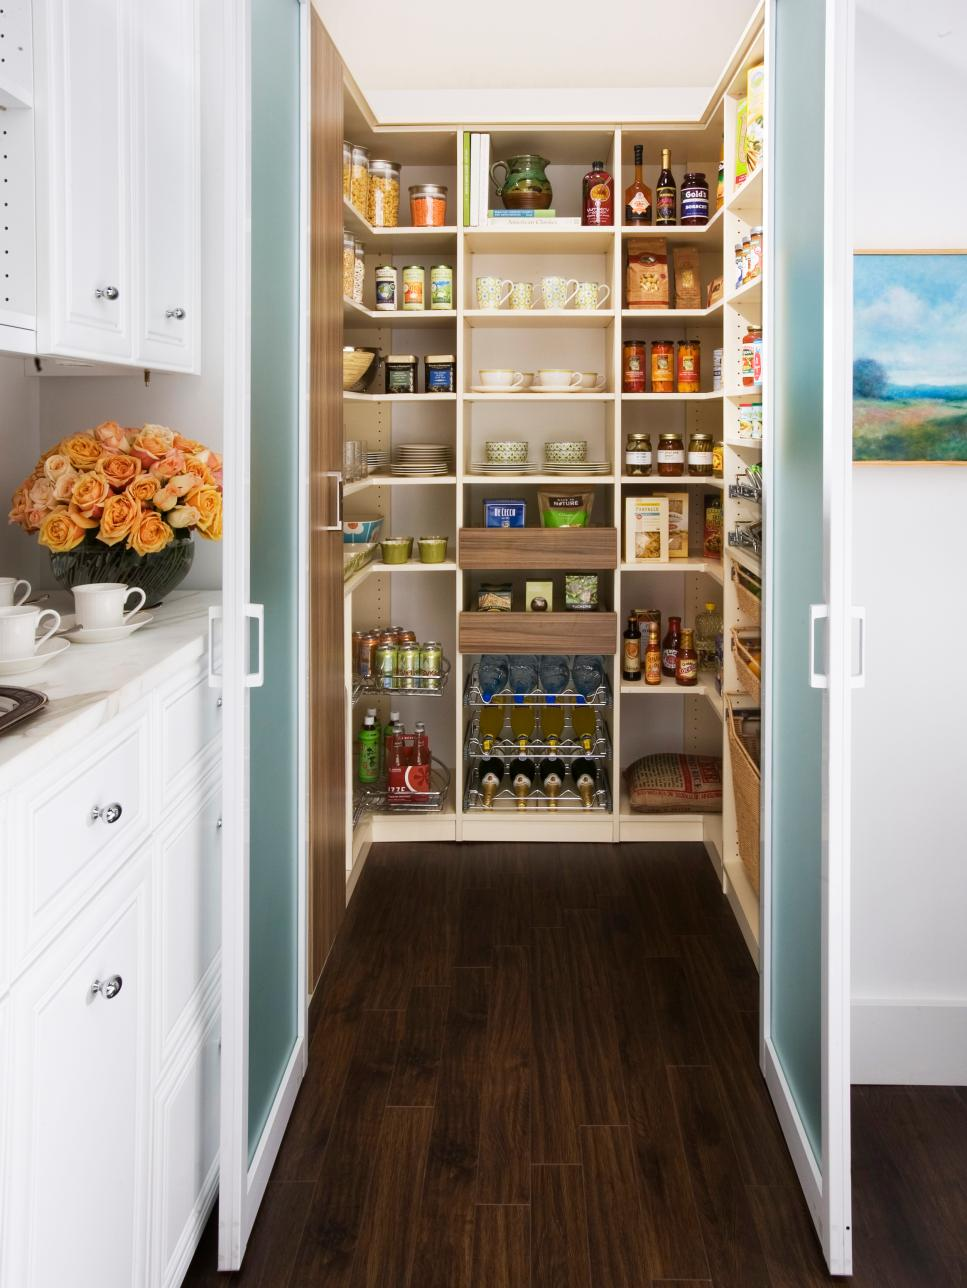 Kitchen storage ideas hgtv for 5 x 20 kitchen ideas